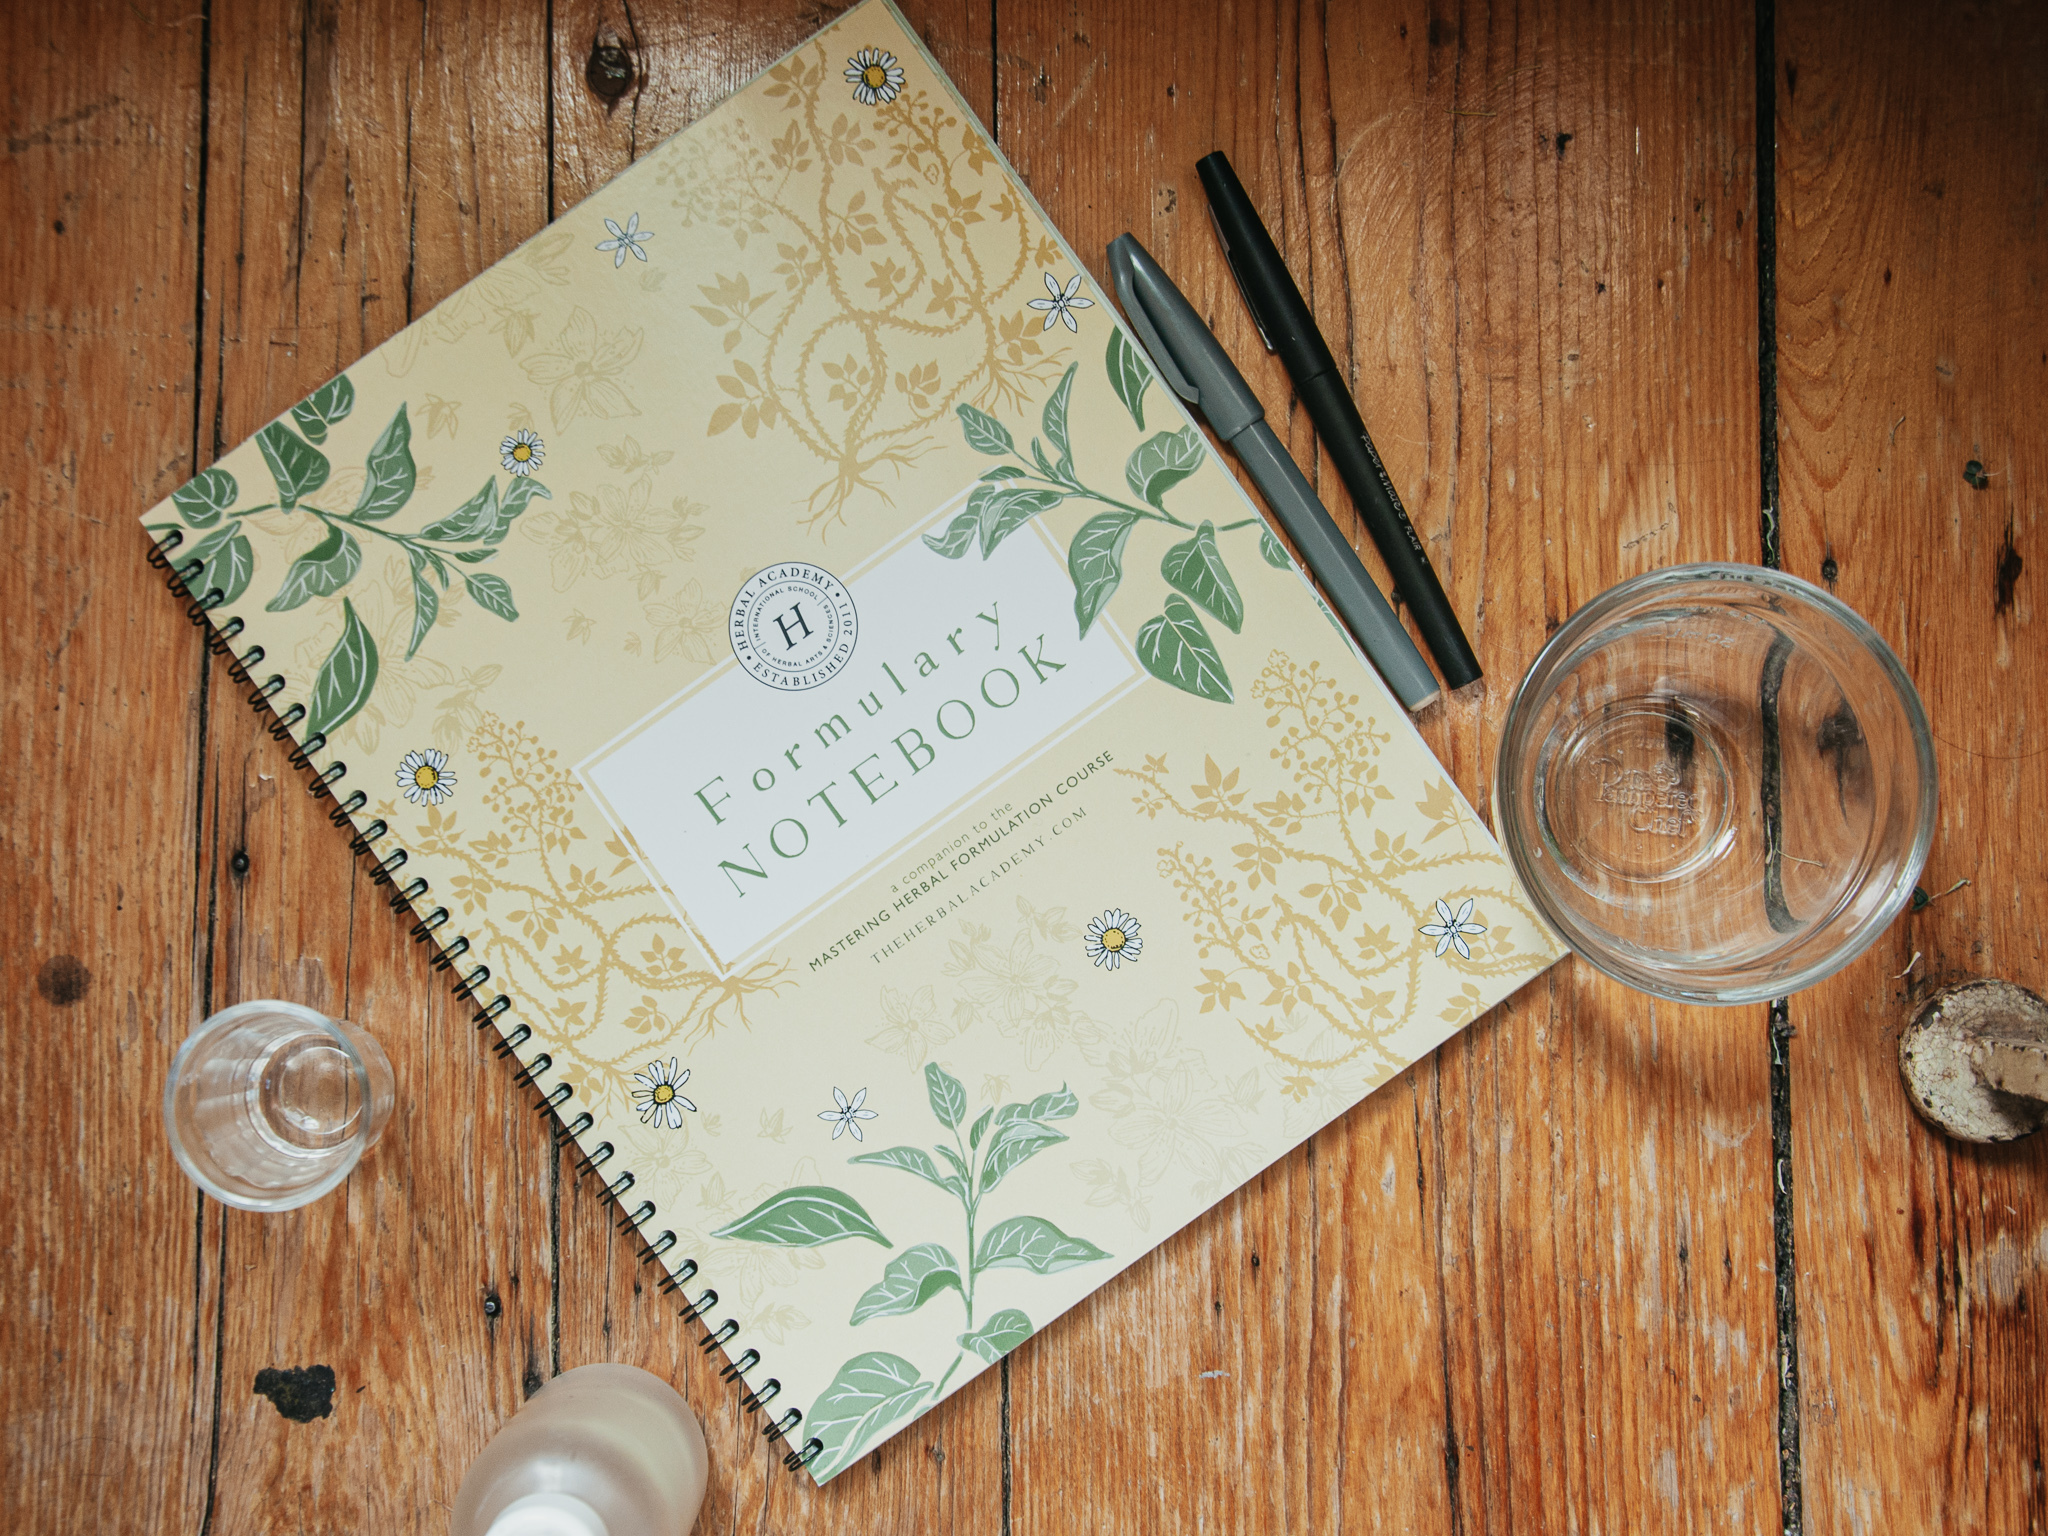 Formulary Notebook for Mastering Herbal Formulations Course